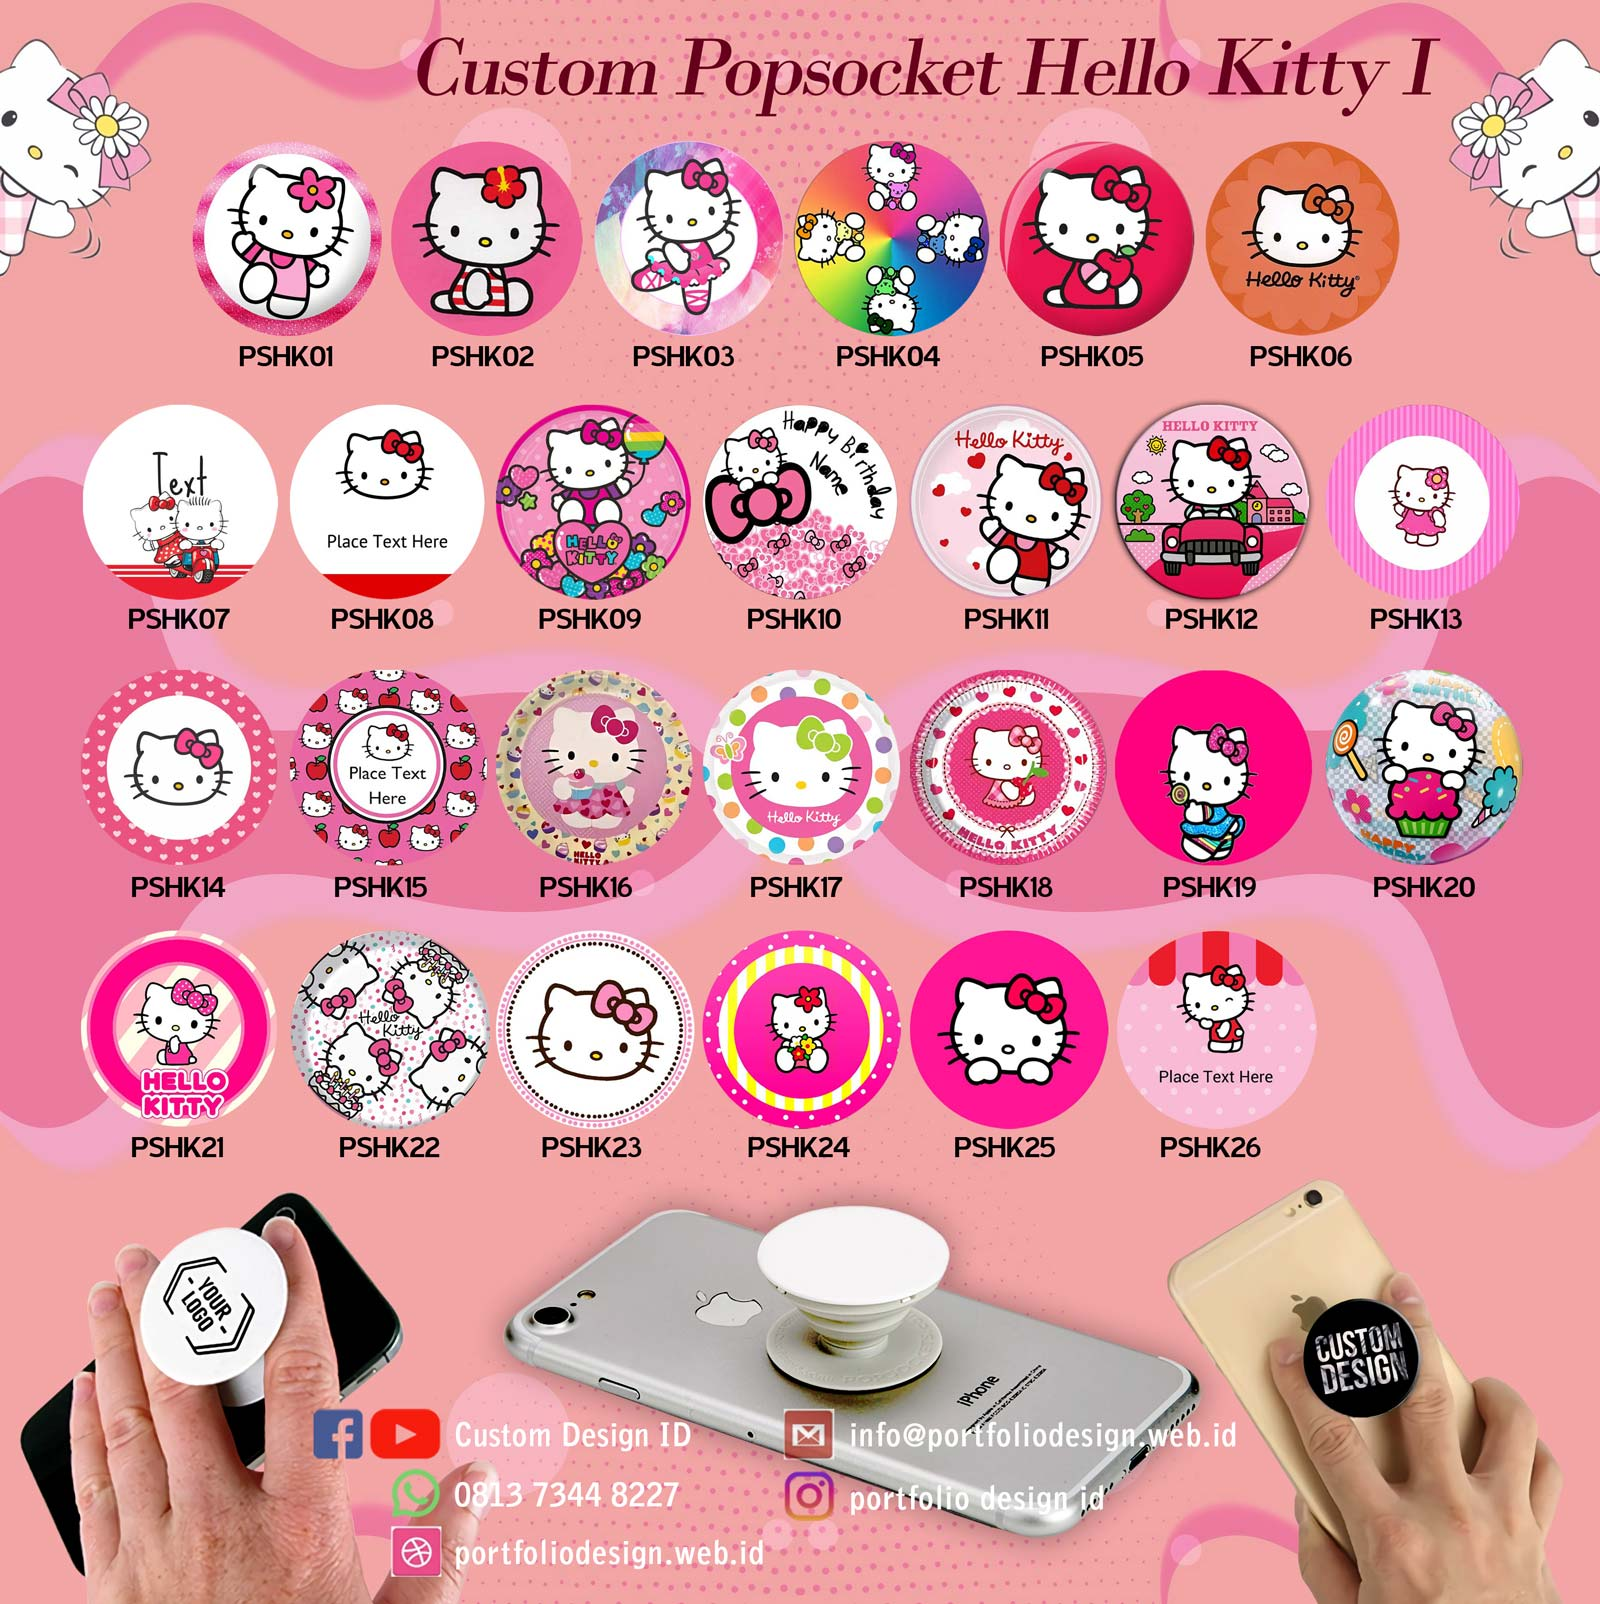 Pilihan desain custom popsocket karakter hp Hello Kitty part 1